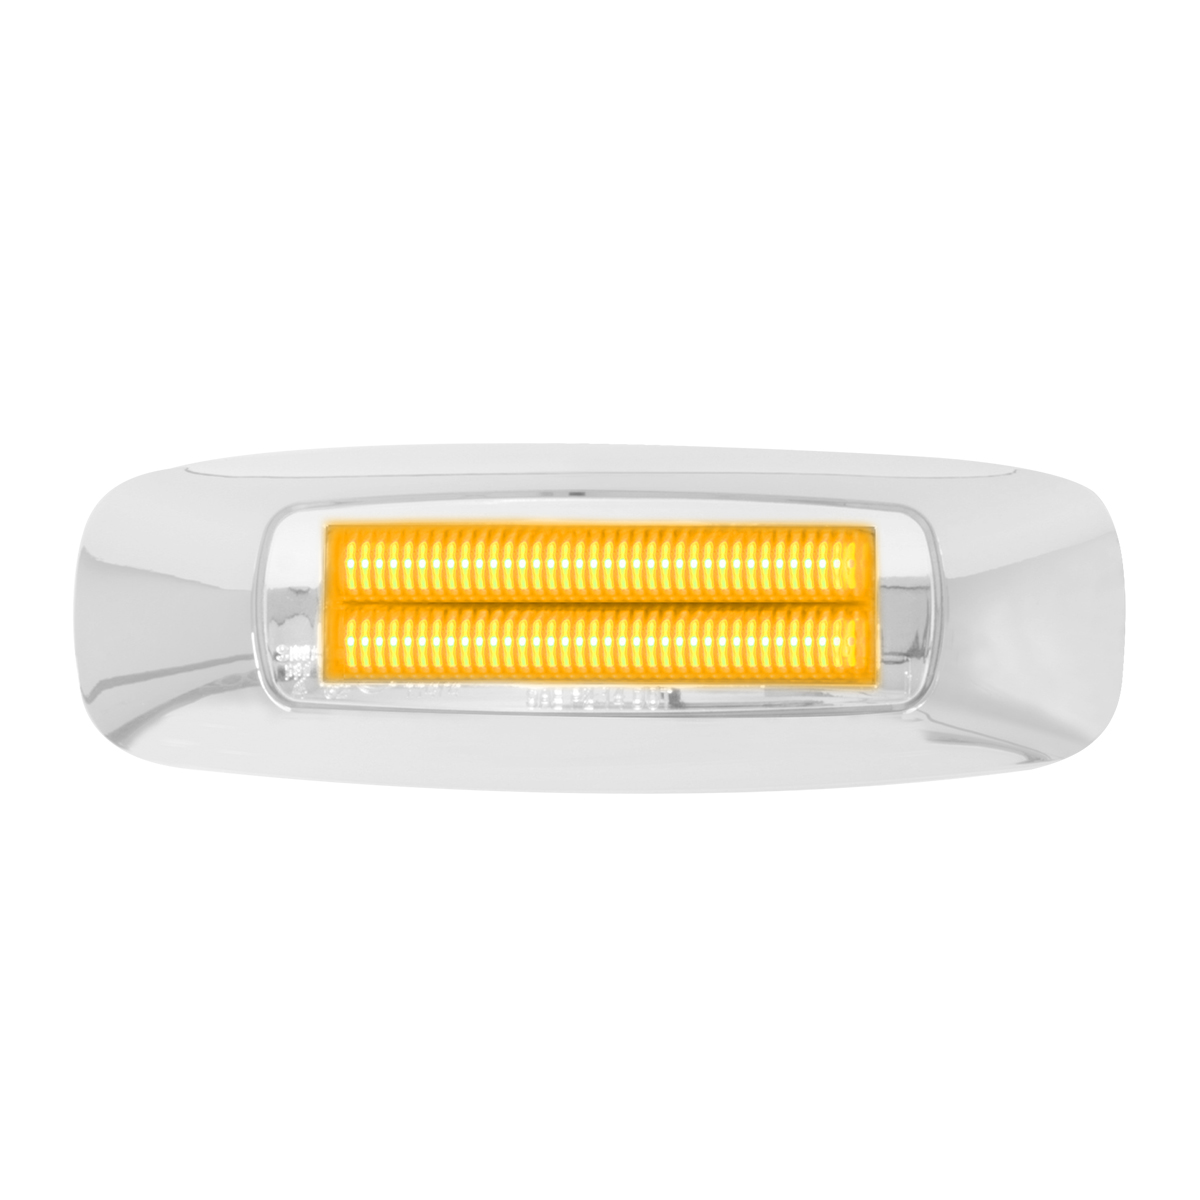 "74731 4-5/8"" Dual Function Rectangular Prime LED Light"